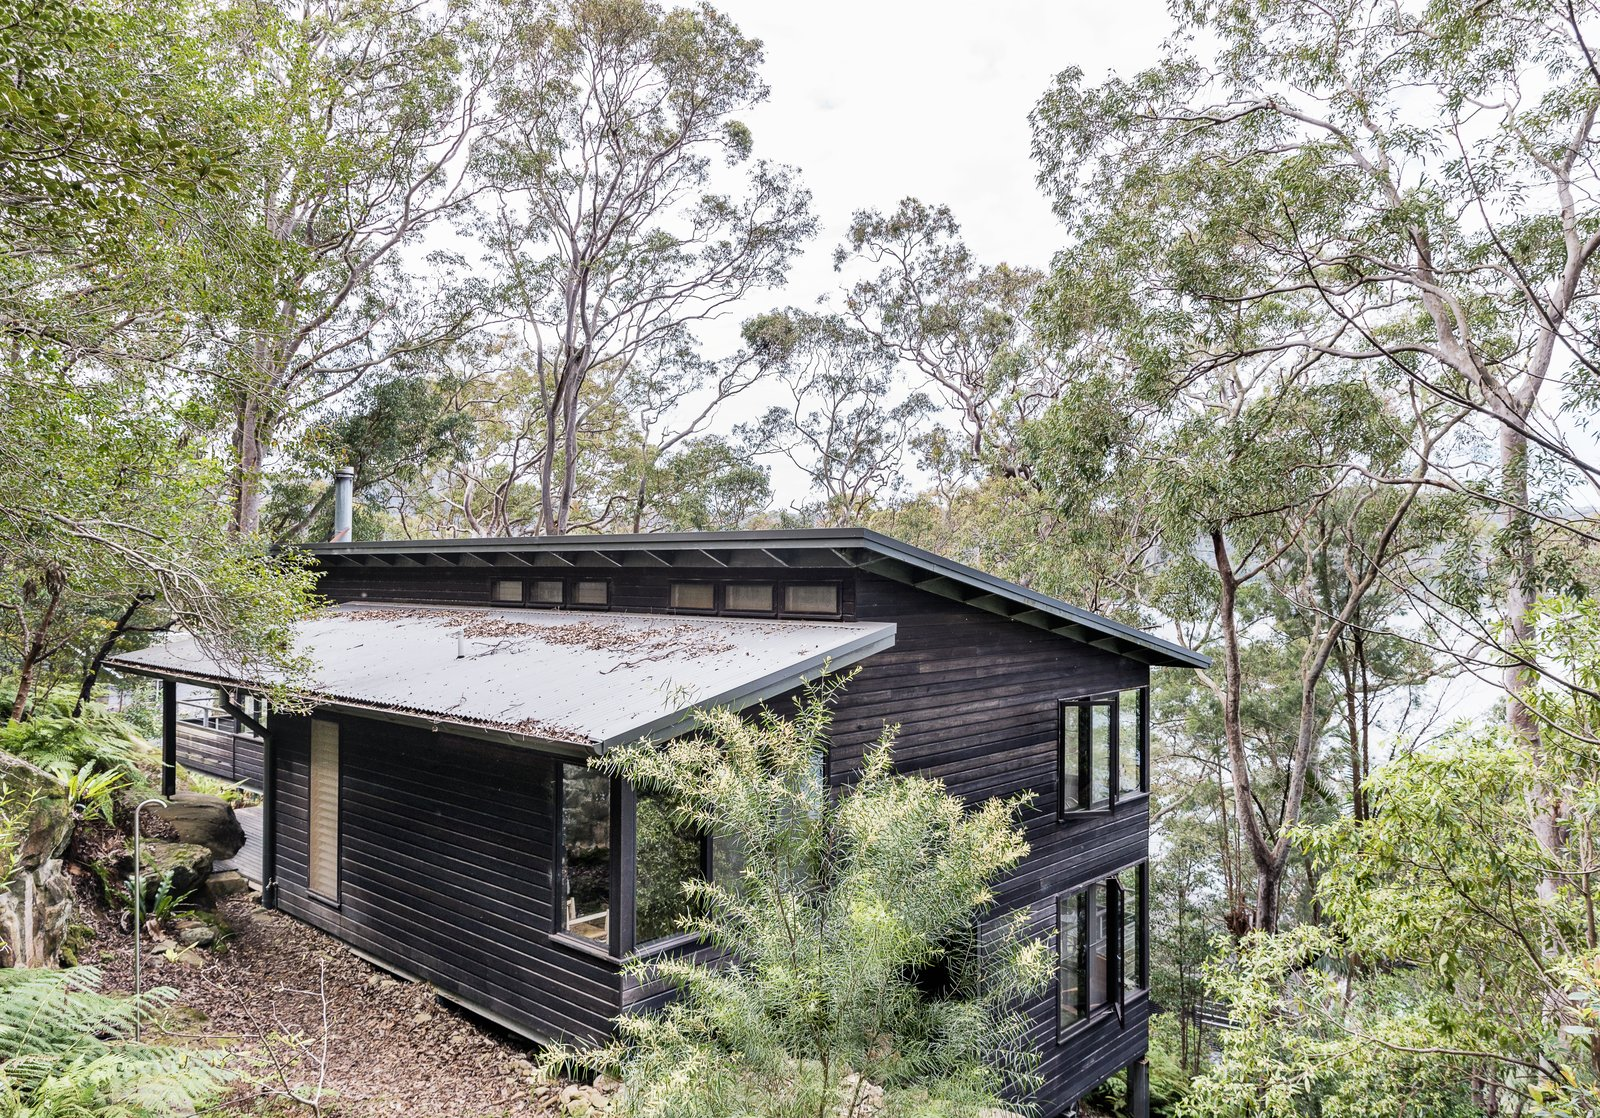 Exterior, Wood Siding Material, House Building Type, and Shed RoofLine North of Sydney on Dangar Island is a modern Australian vacation rental that's positioned to take full advantage of views of the Hawkesbury River and gorgeous native Angophora trees.  Photo 1 of 13 in Stay in a Riverside Vacation Home That Embraces the Australian Bush